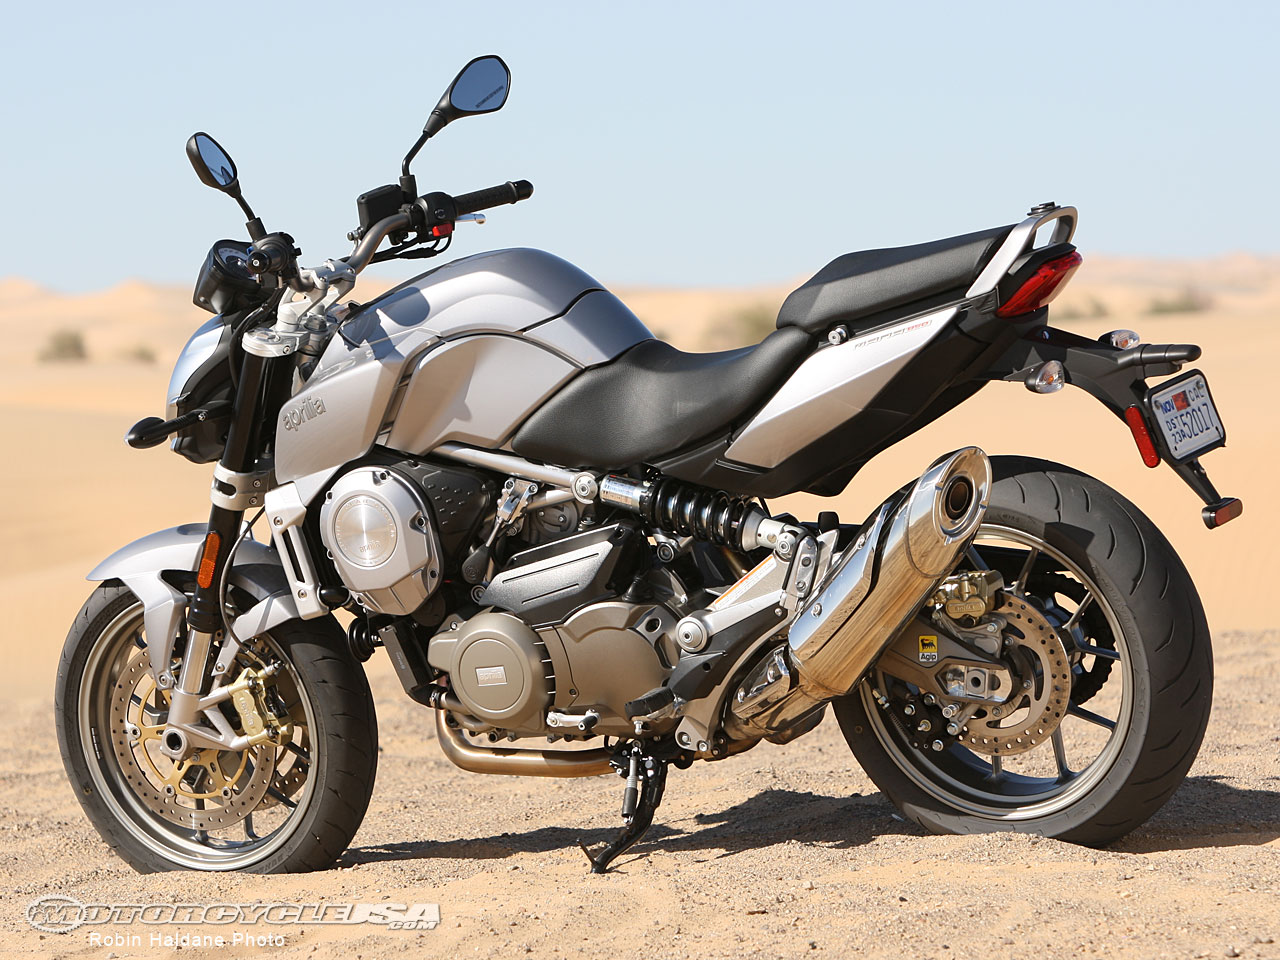 ATK motorcycles: pics, specs and list of models